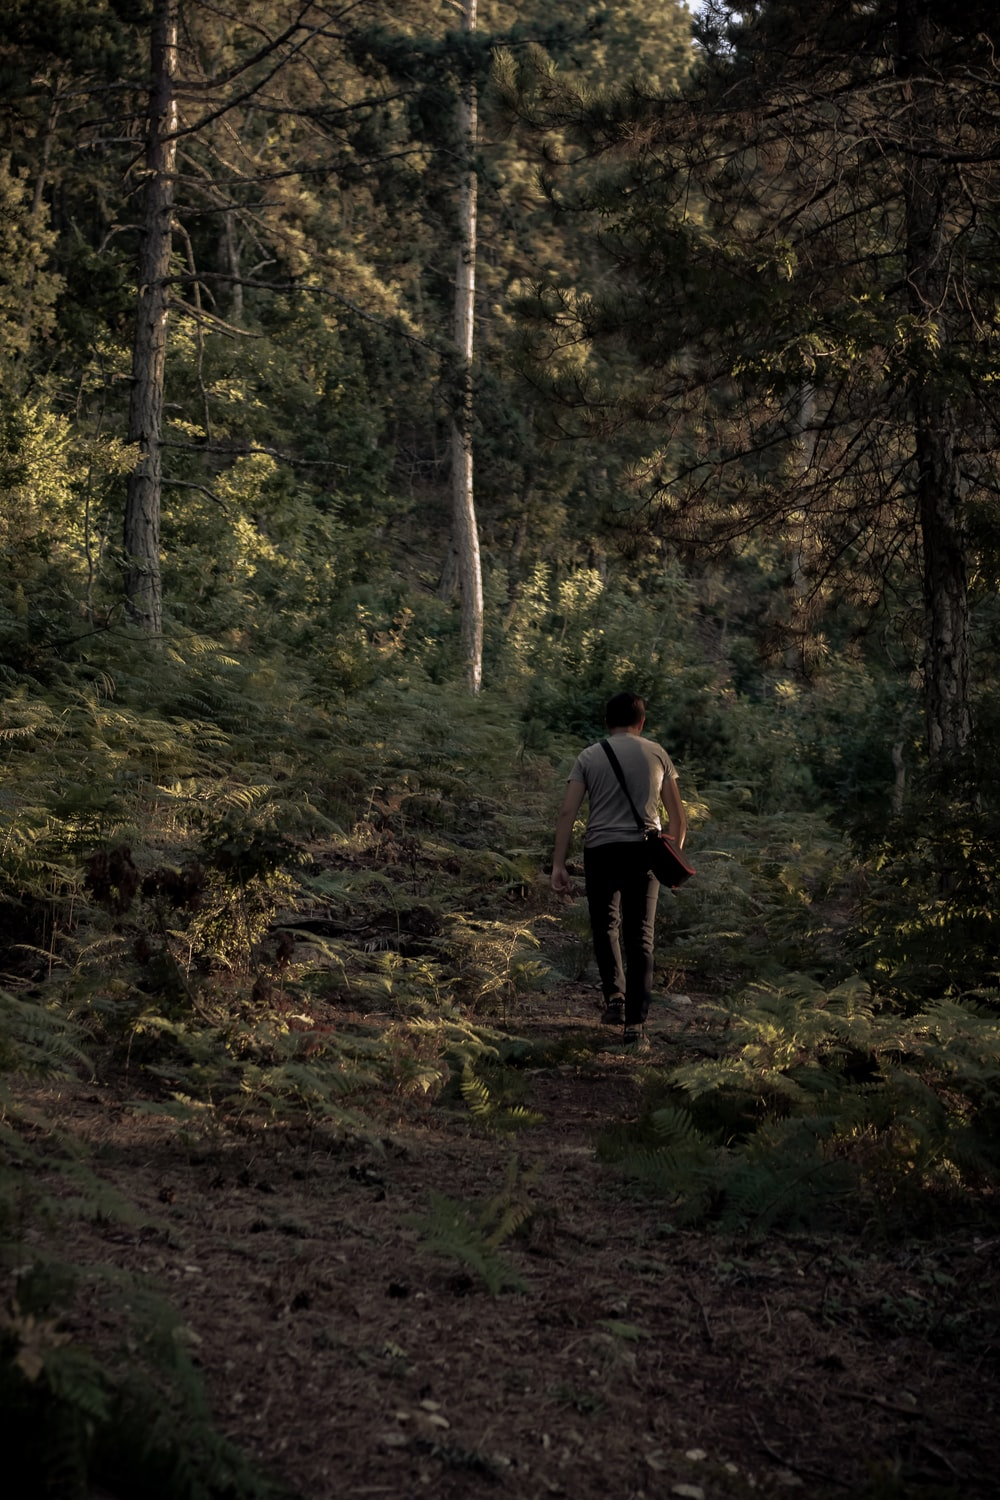 man in white t-shirt walking on forest during daytime